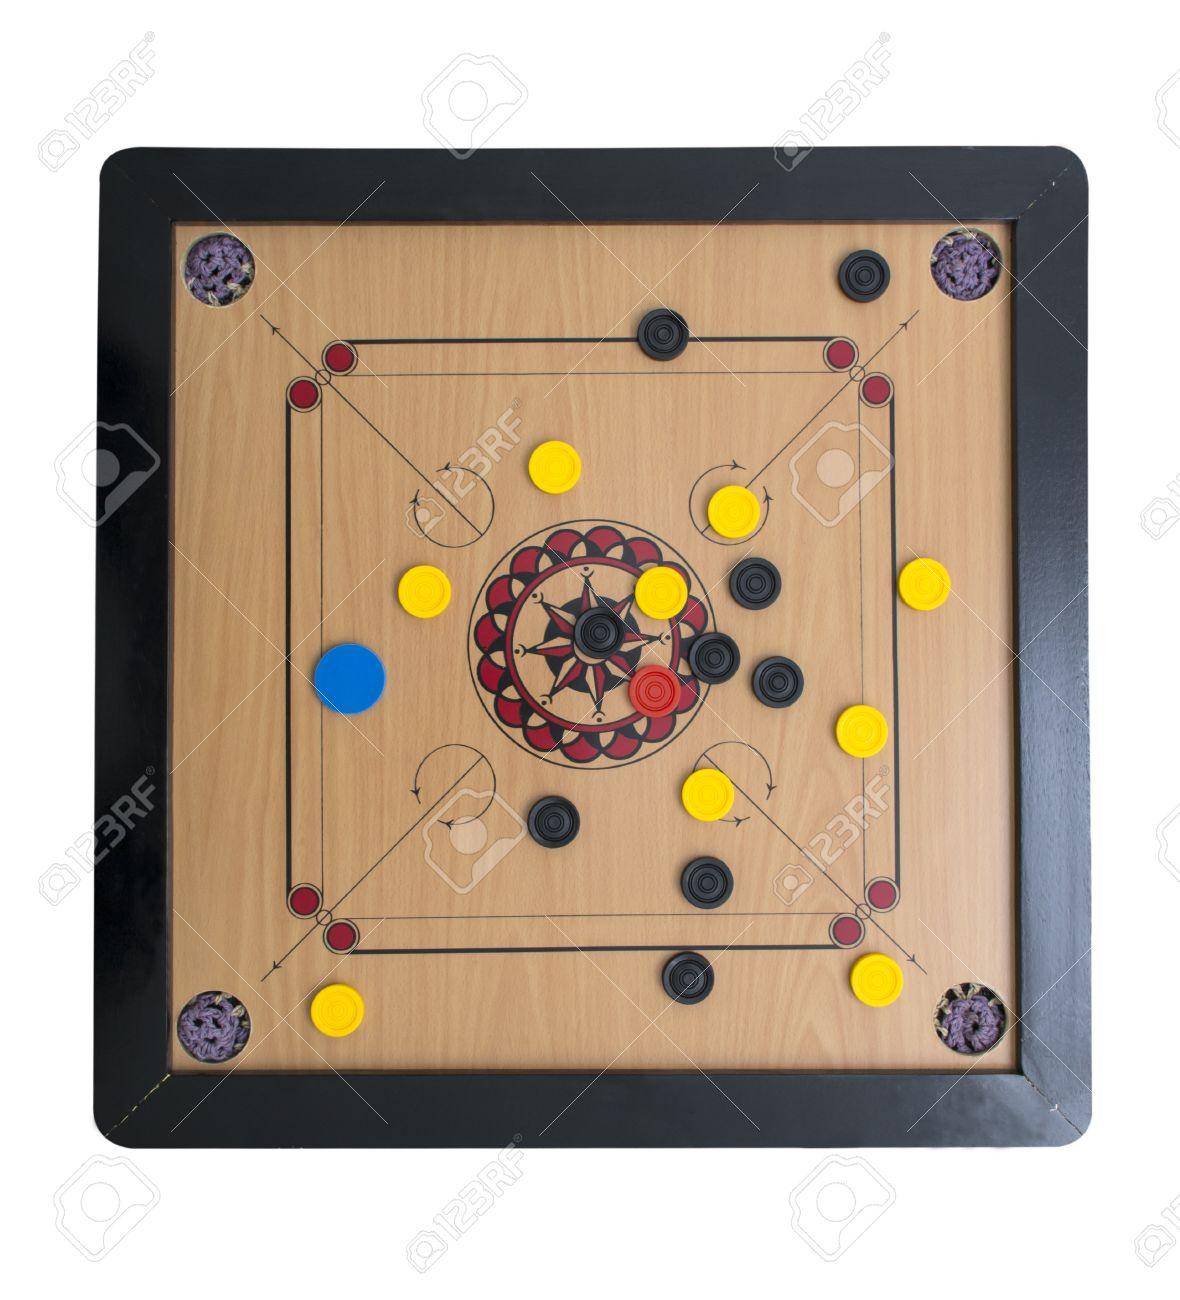 Carrom Board Game From Upper Side Stock Photo Picture And Royalty Free Image Image 20645173